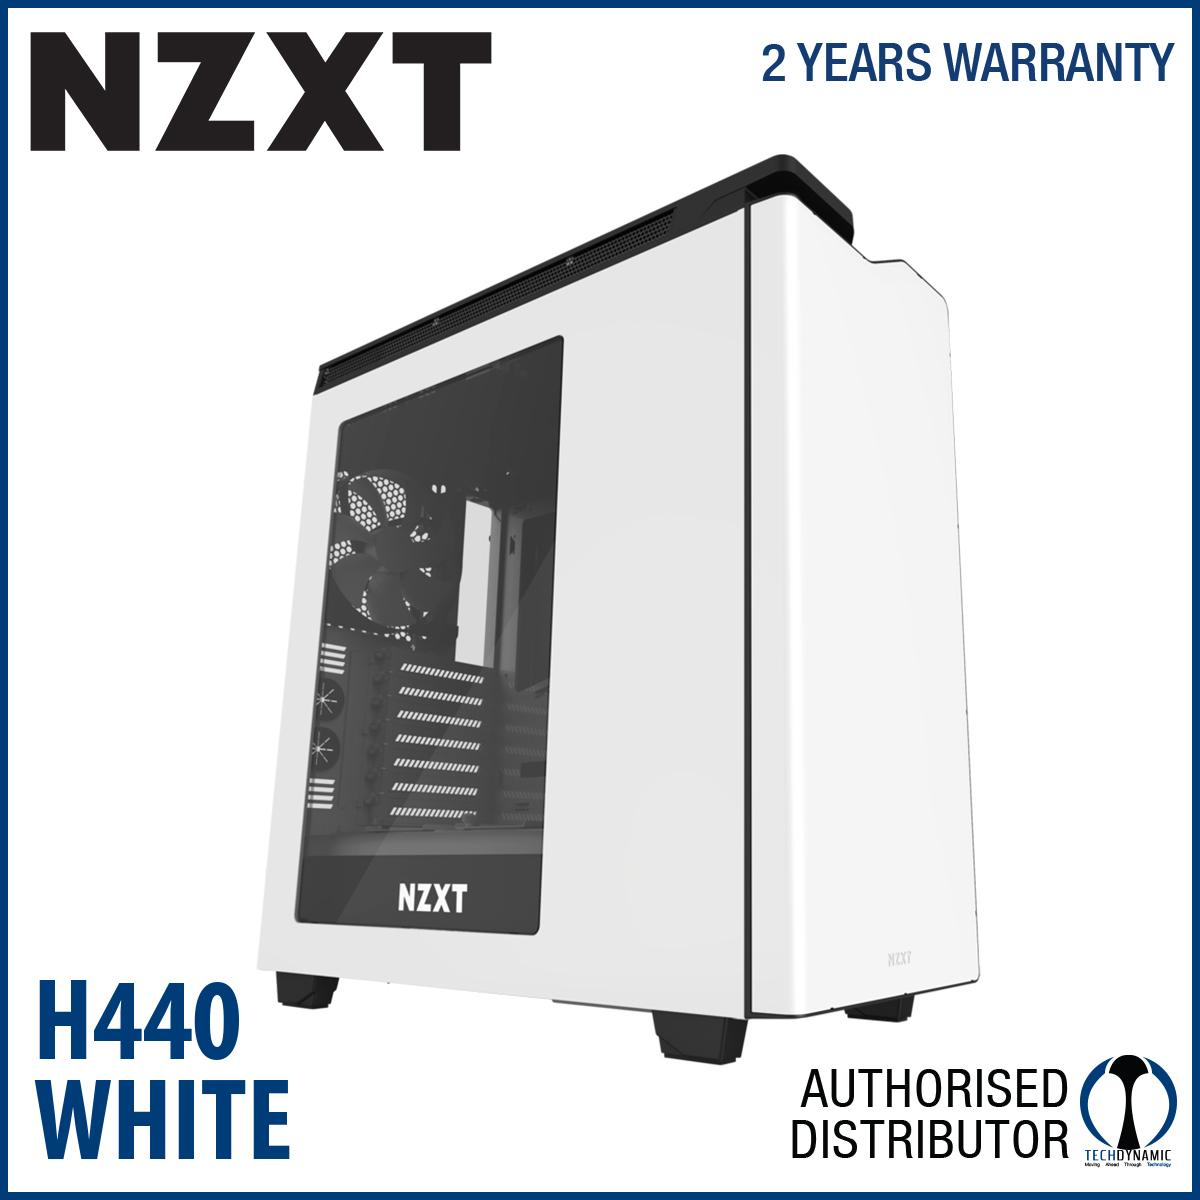 Nzxt H440 Window White Reviews